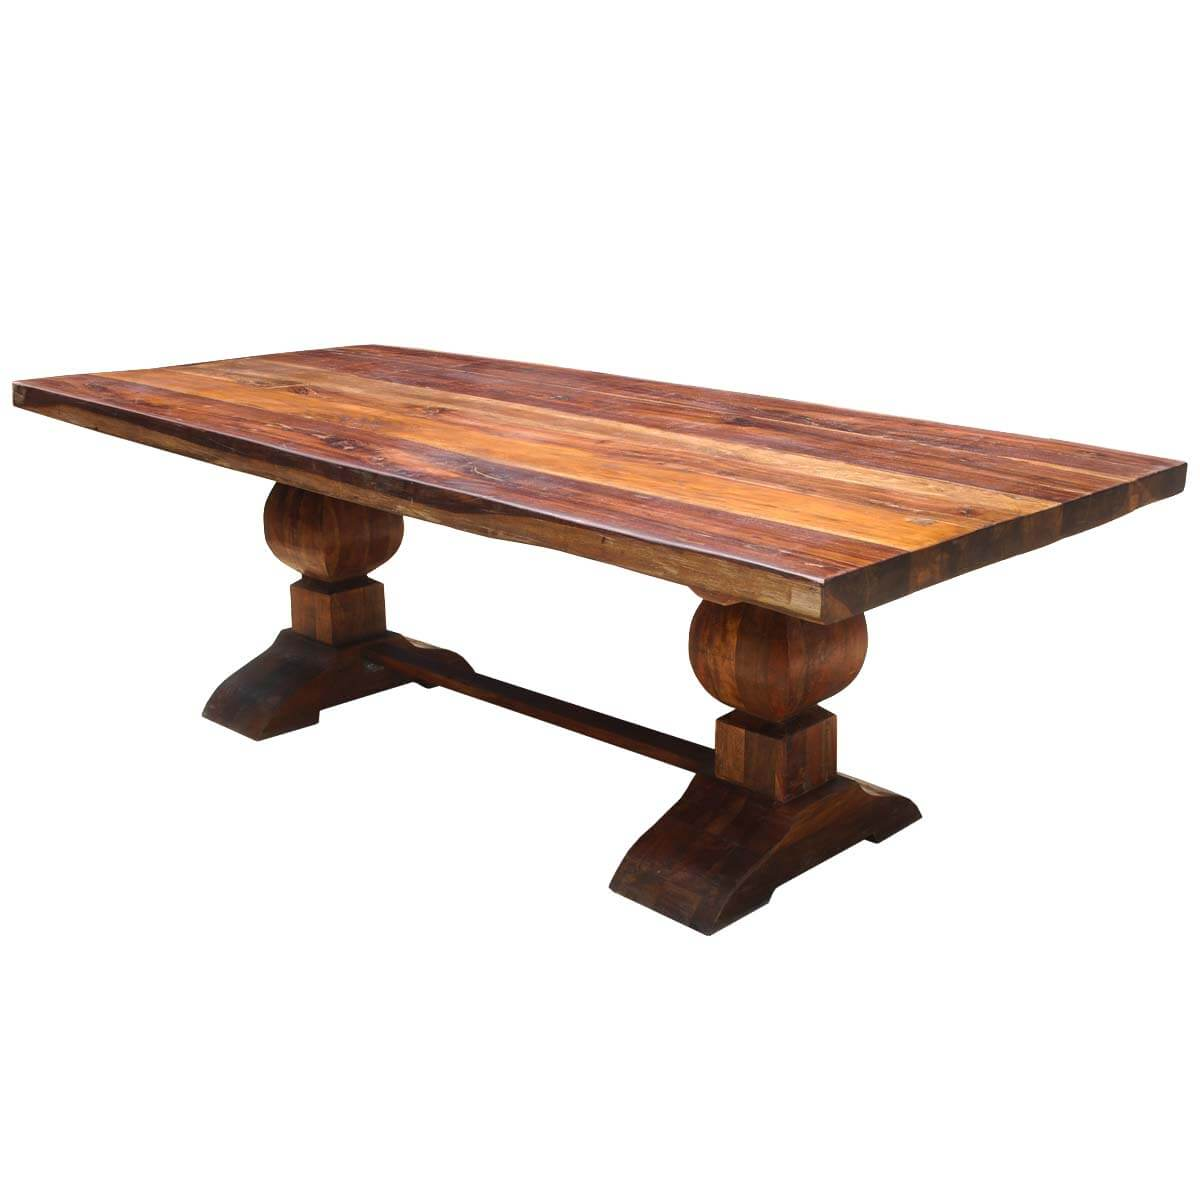 large rustic reclaimed wood double trestle pedestal dining room table. Black Bedroom Furniture Sets. Home Design Ideas